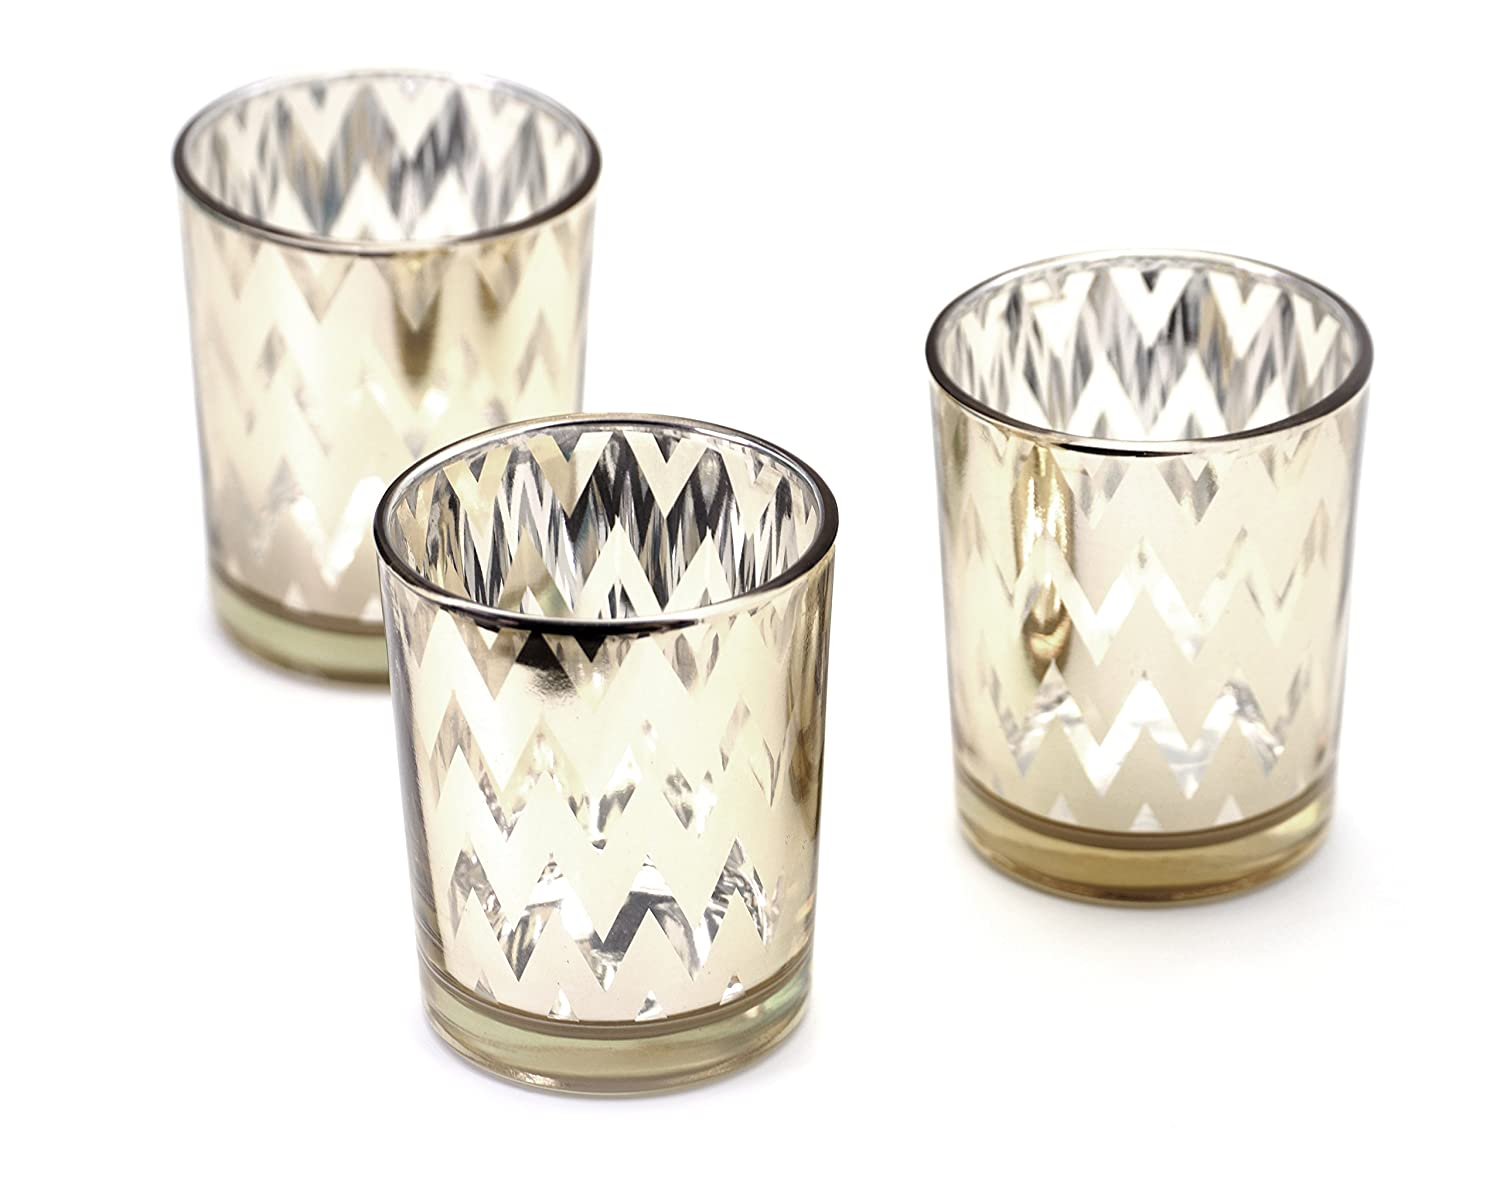 Set of 3 pcs Parties and Home D/écor Creationtop Shining Glass Votive Tealight Candle Holders Set for Weddings Style4